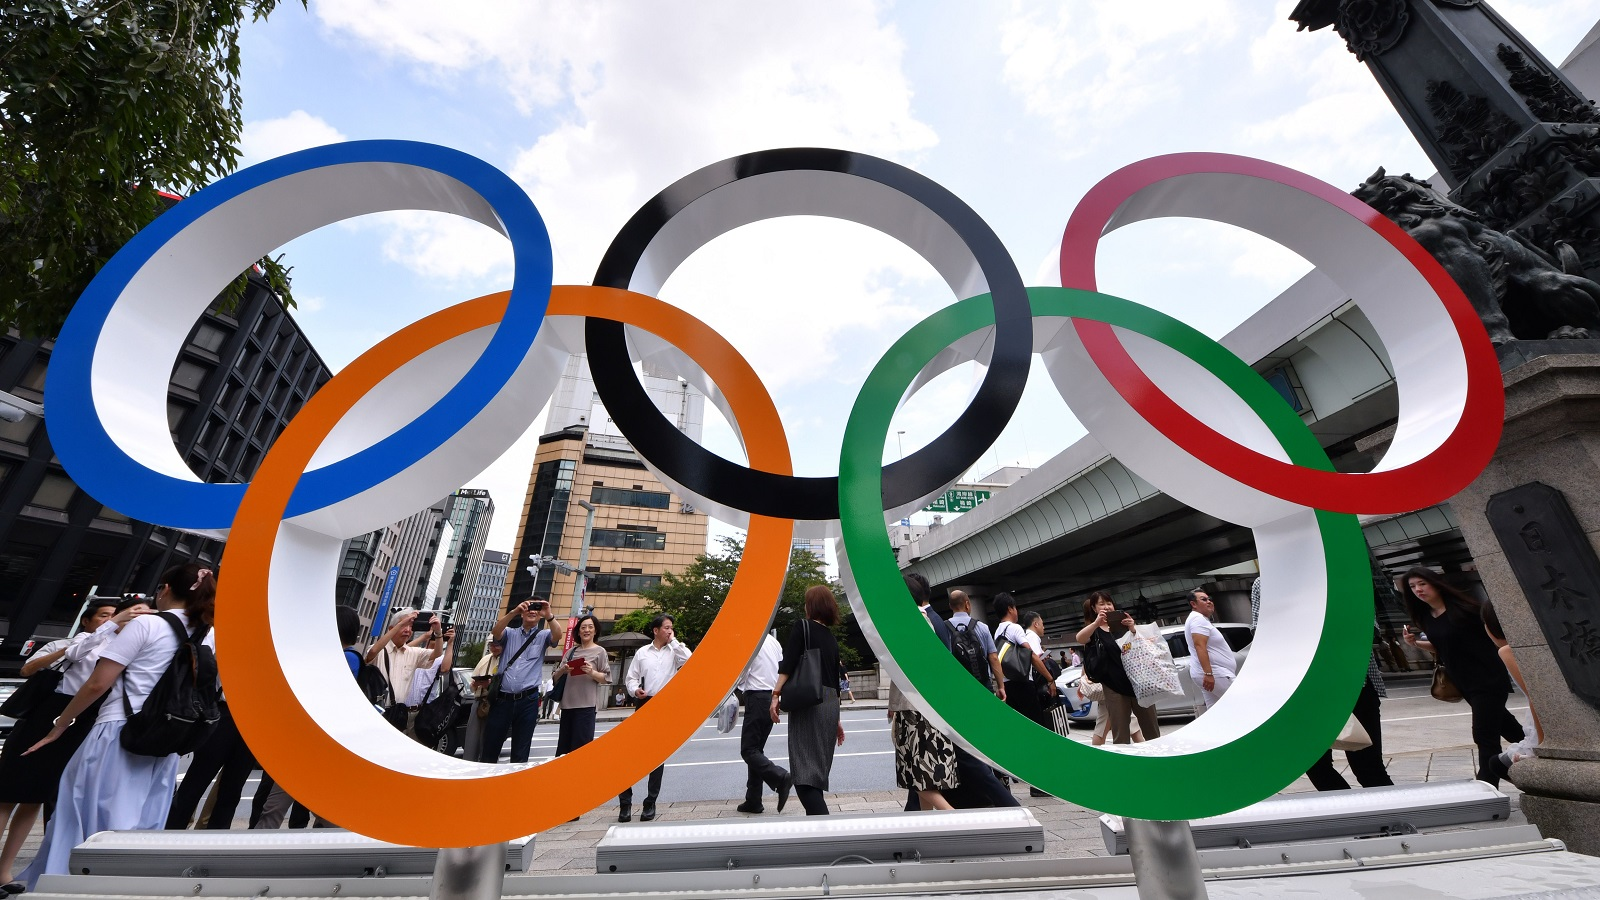 Tokyo Olympic Games 2020: Here's the list of all the